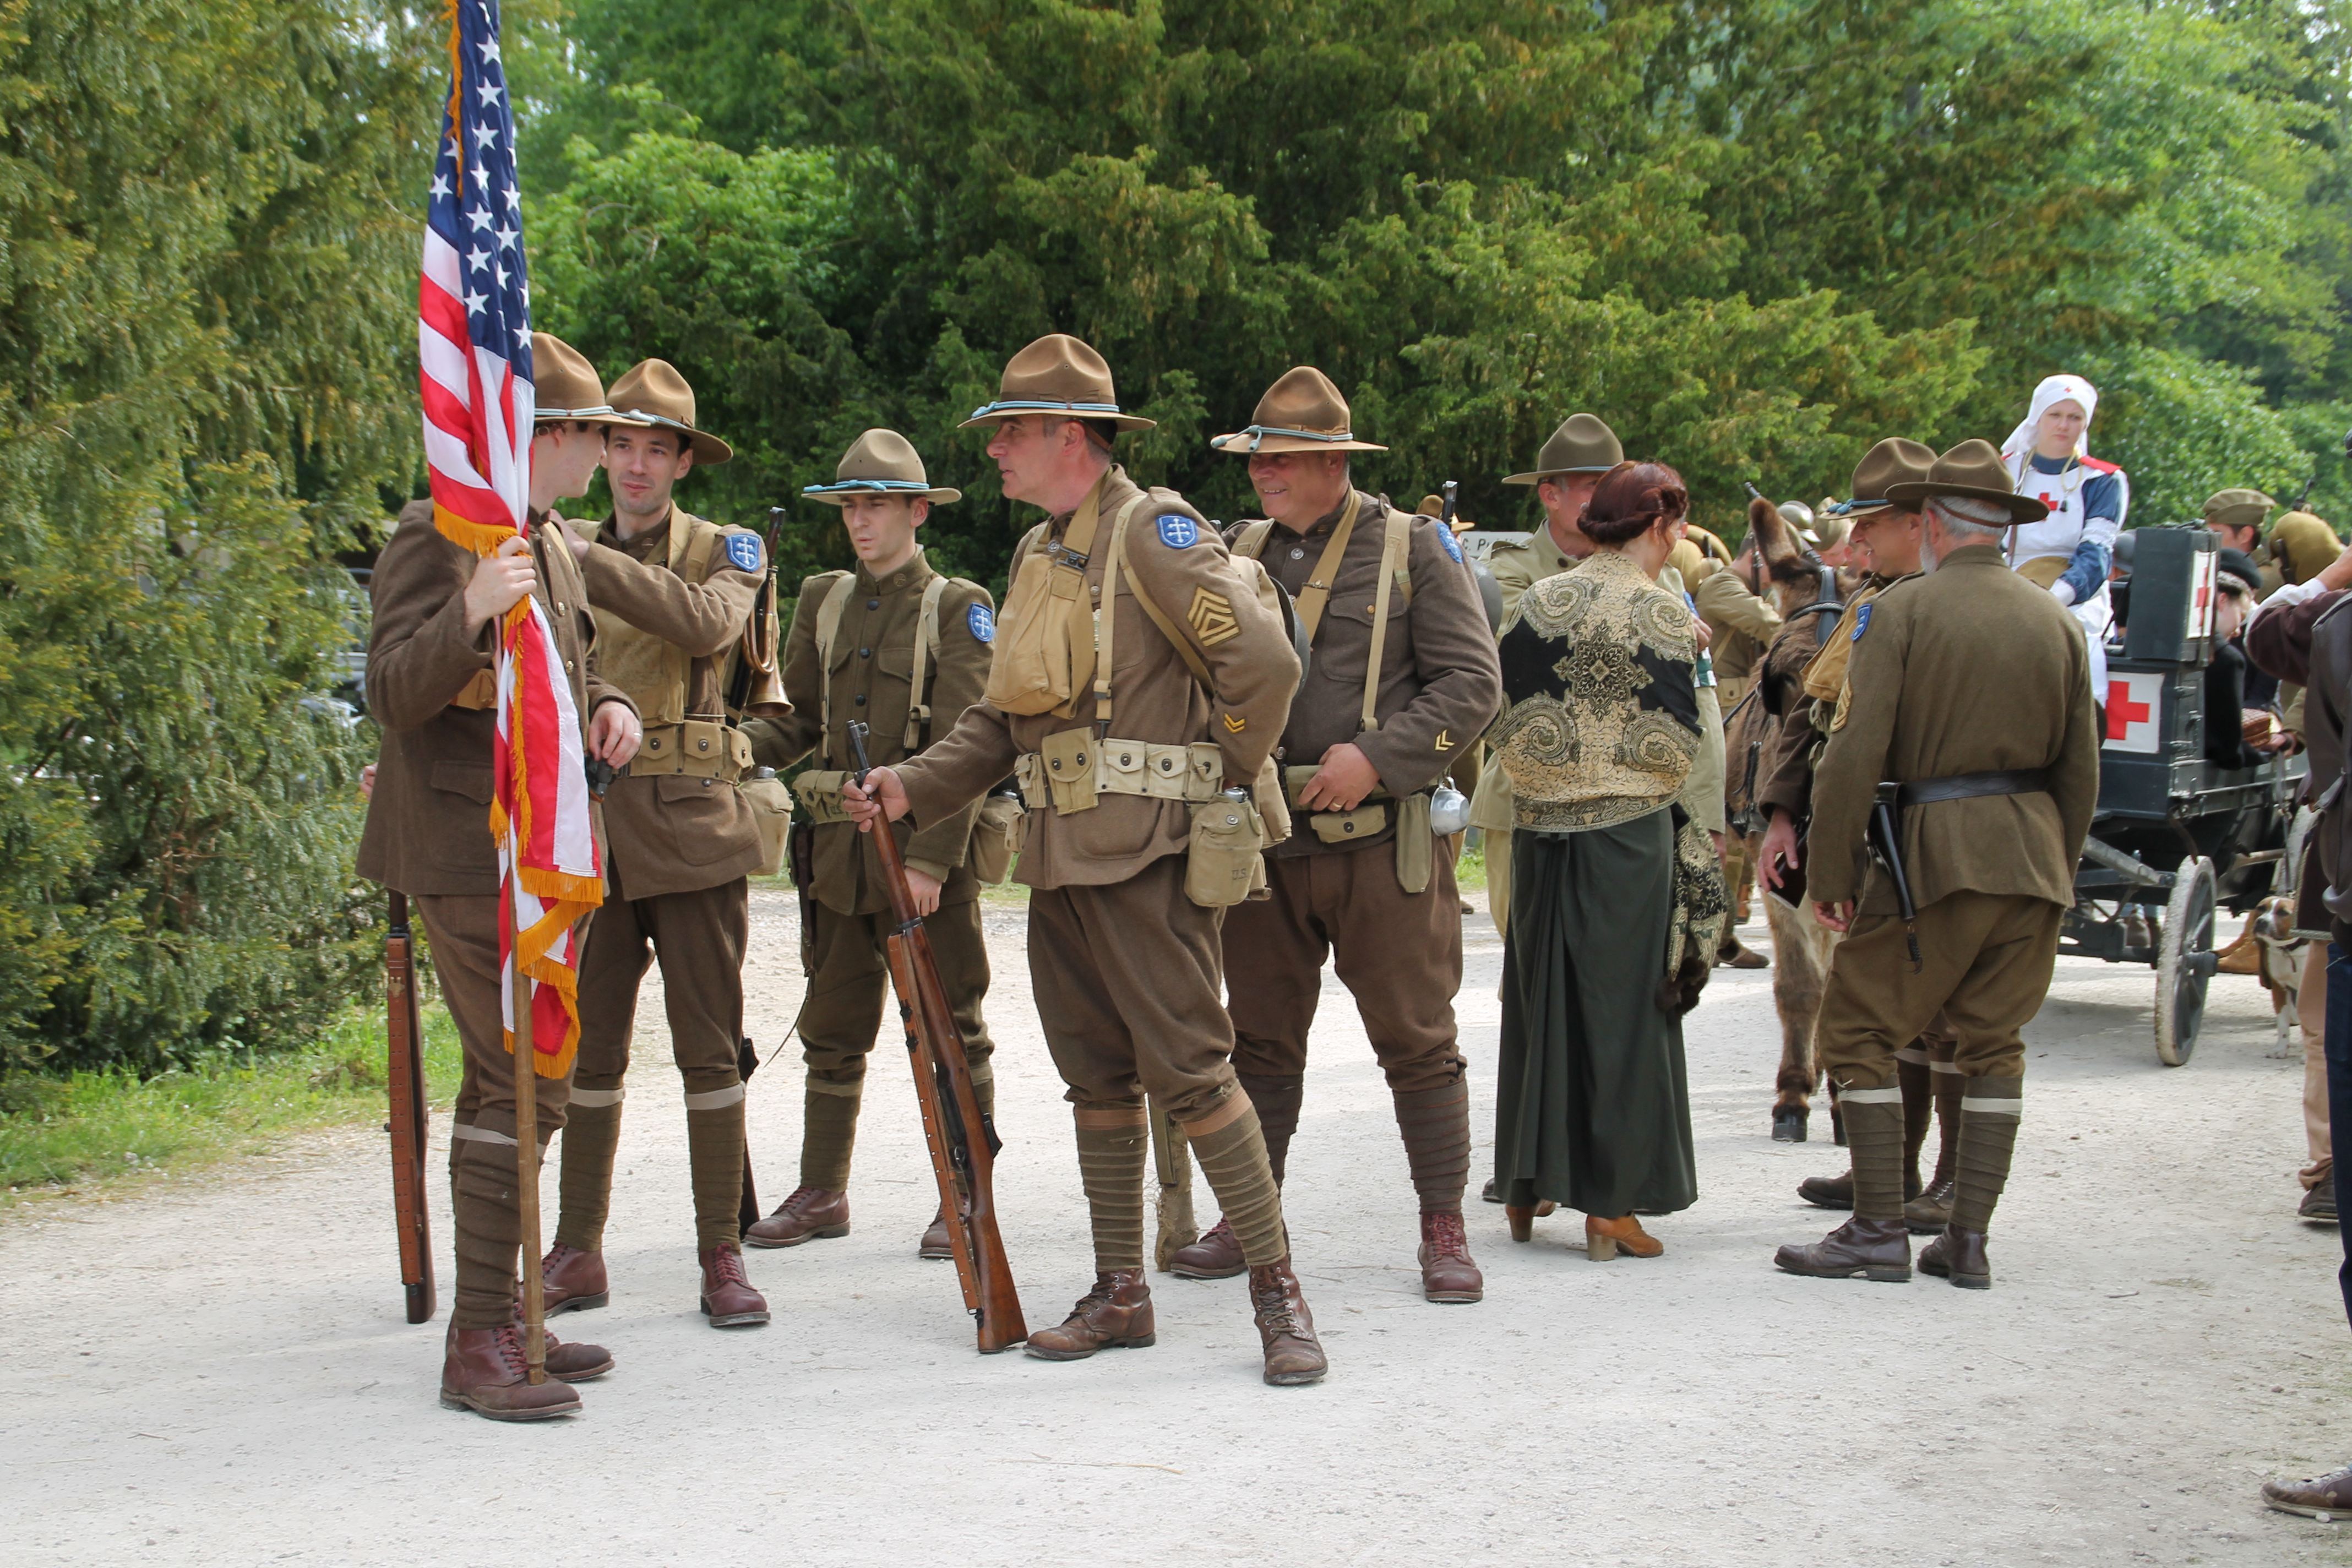 0005 Doughboys 1917 79TH MEMORY GROUP